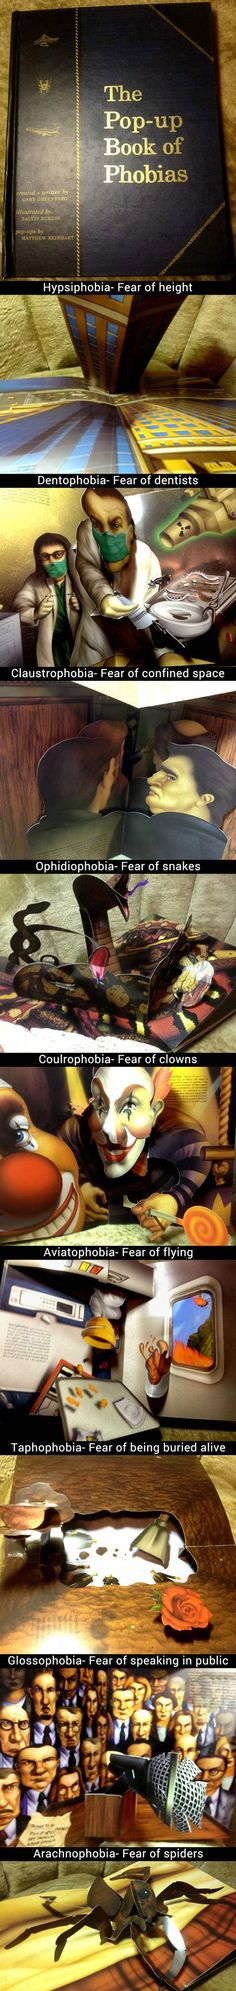 The scariest pop-up book ever made…